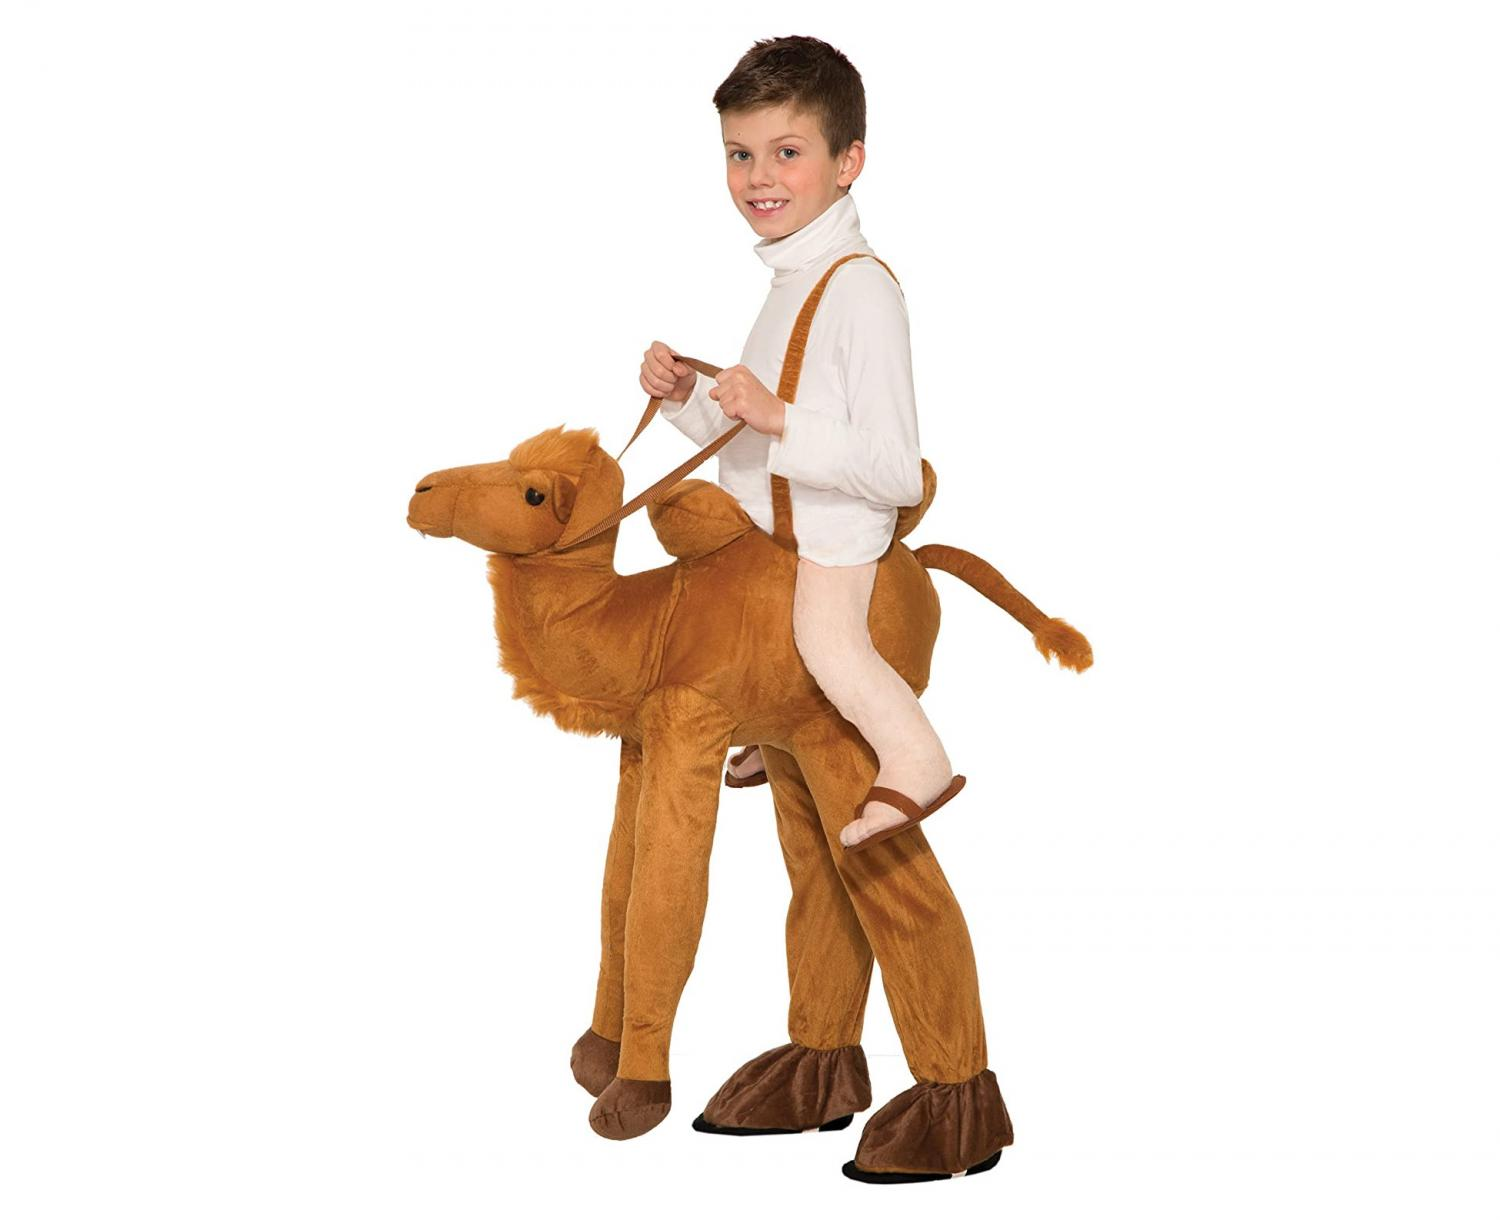 Kids Version Of The Plush Ride-On Camel Costume